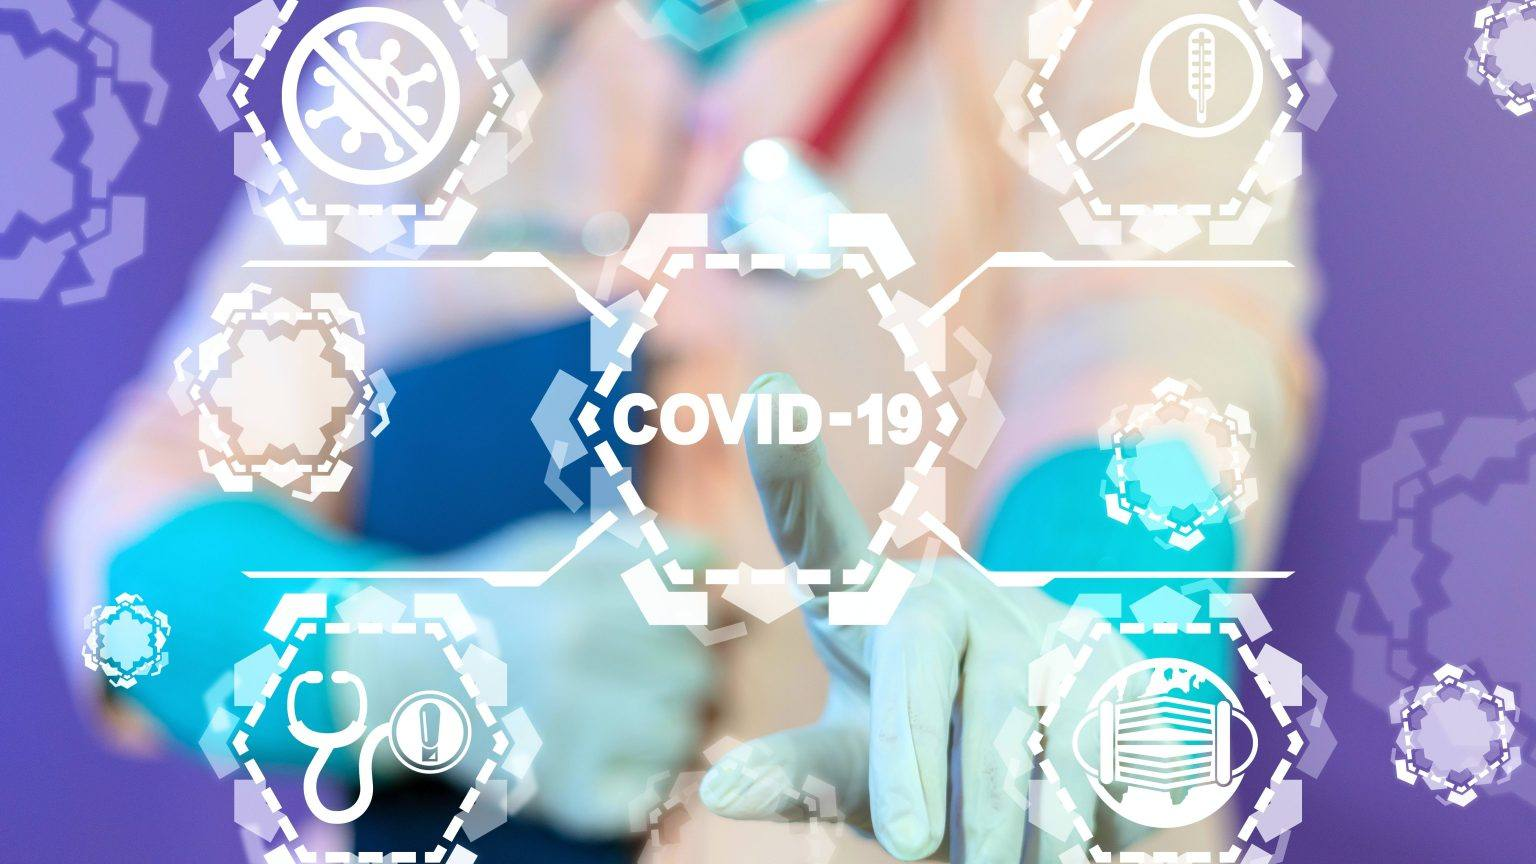 Health and Human Services plays key role in supporting Americans amid COVID-19 crisis